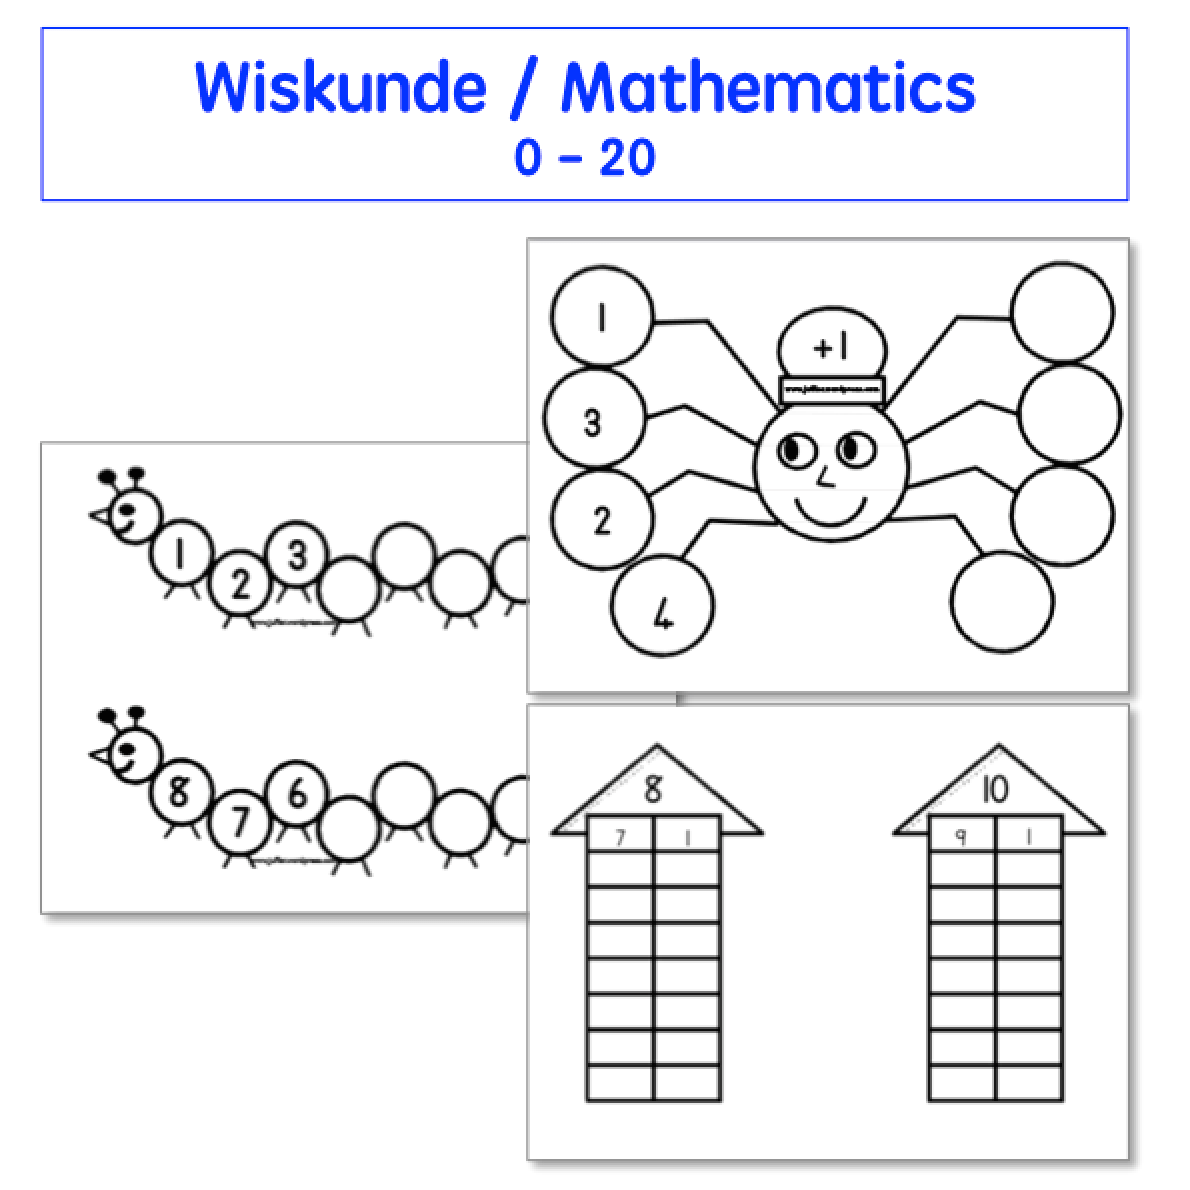 Wiskunde Mathematics Teacha